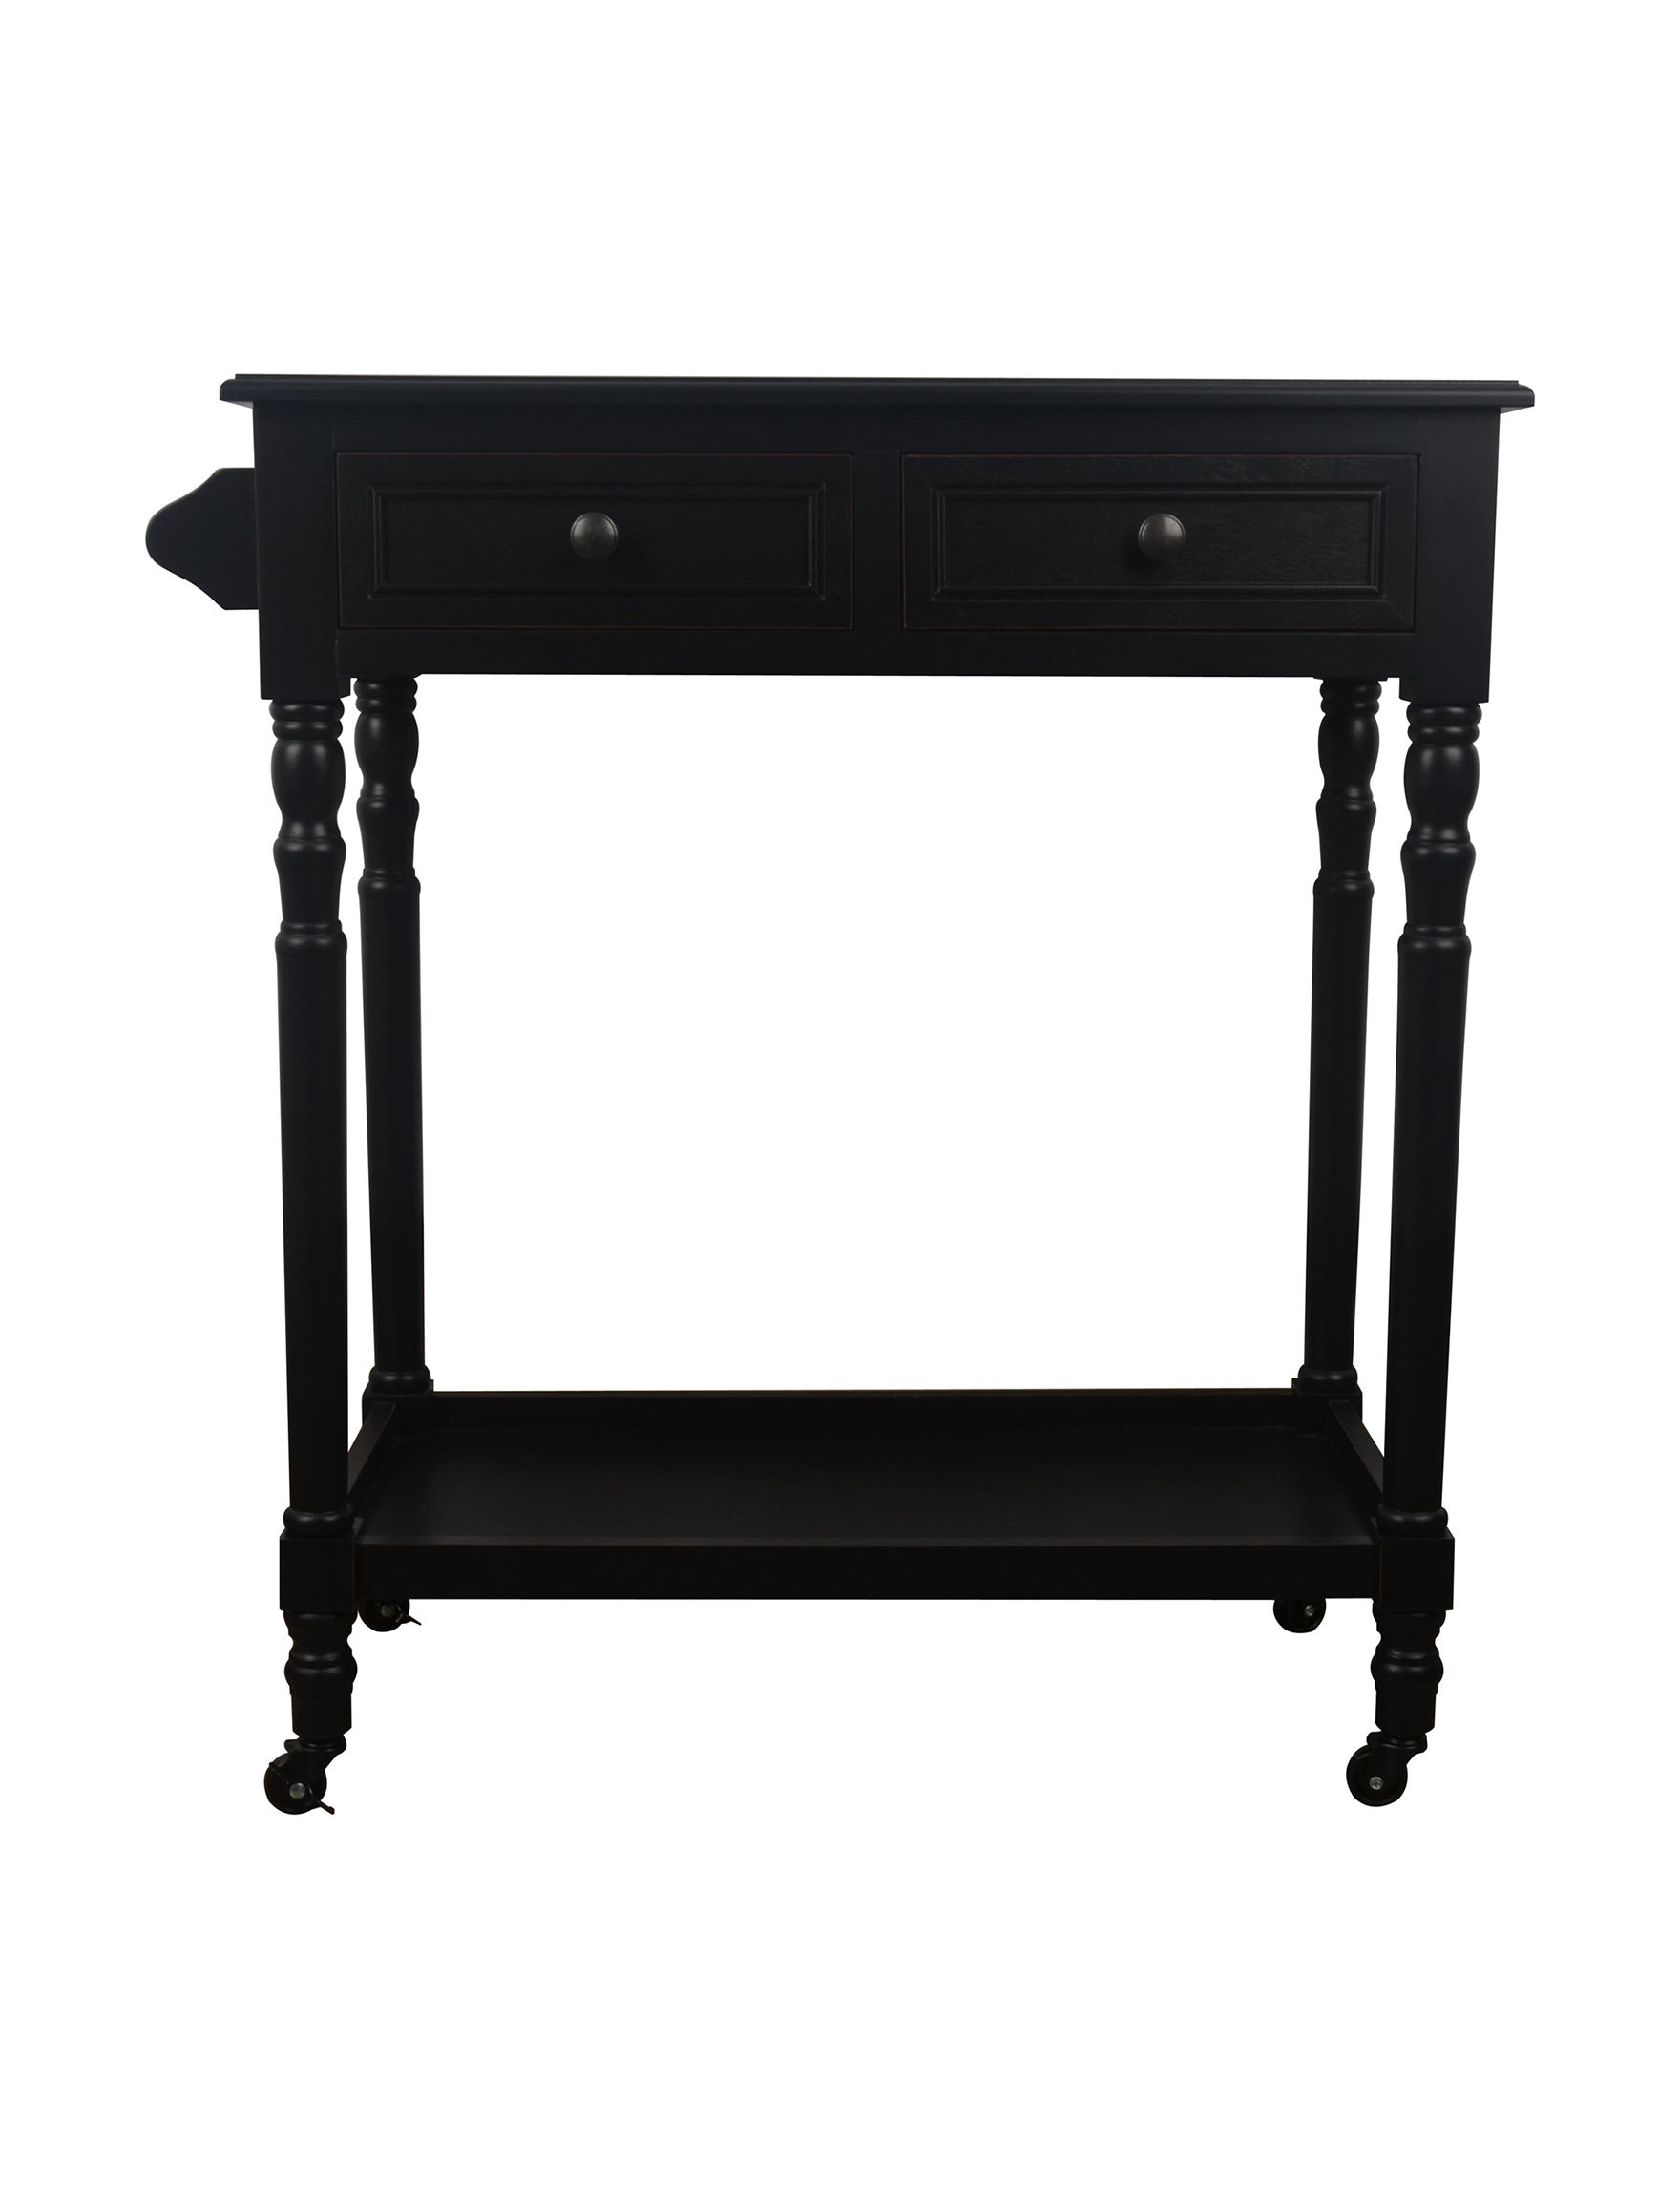 Decor Therapy Black Bar & Wine Storage Kitchen & Dining Furniture